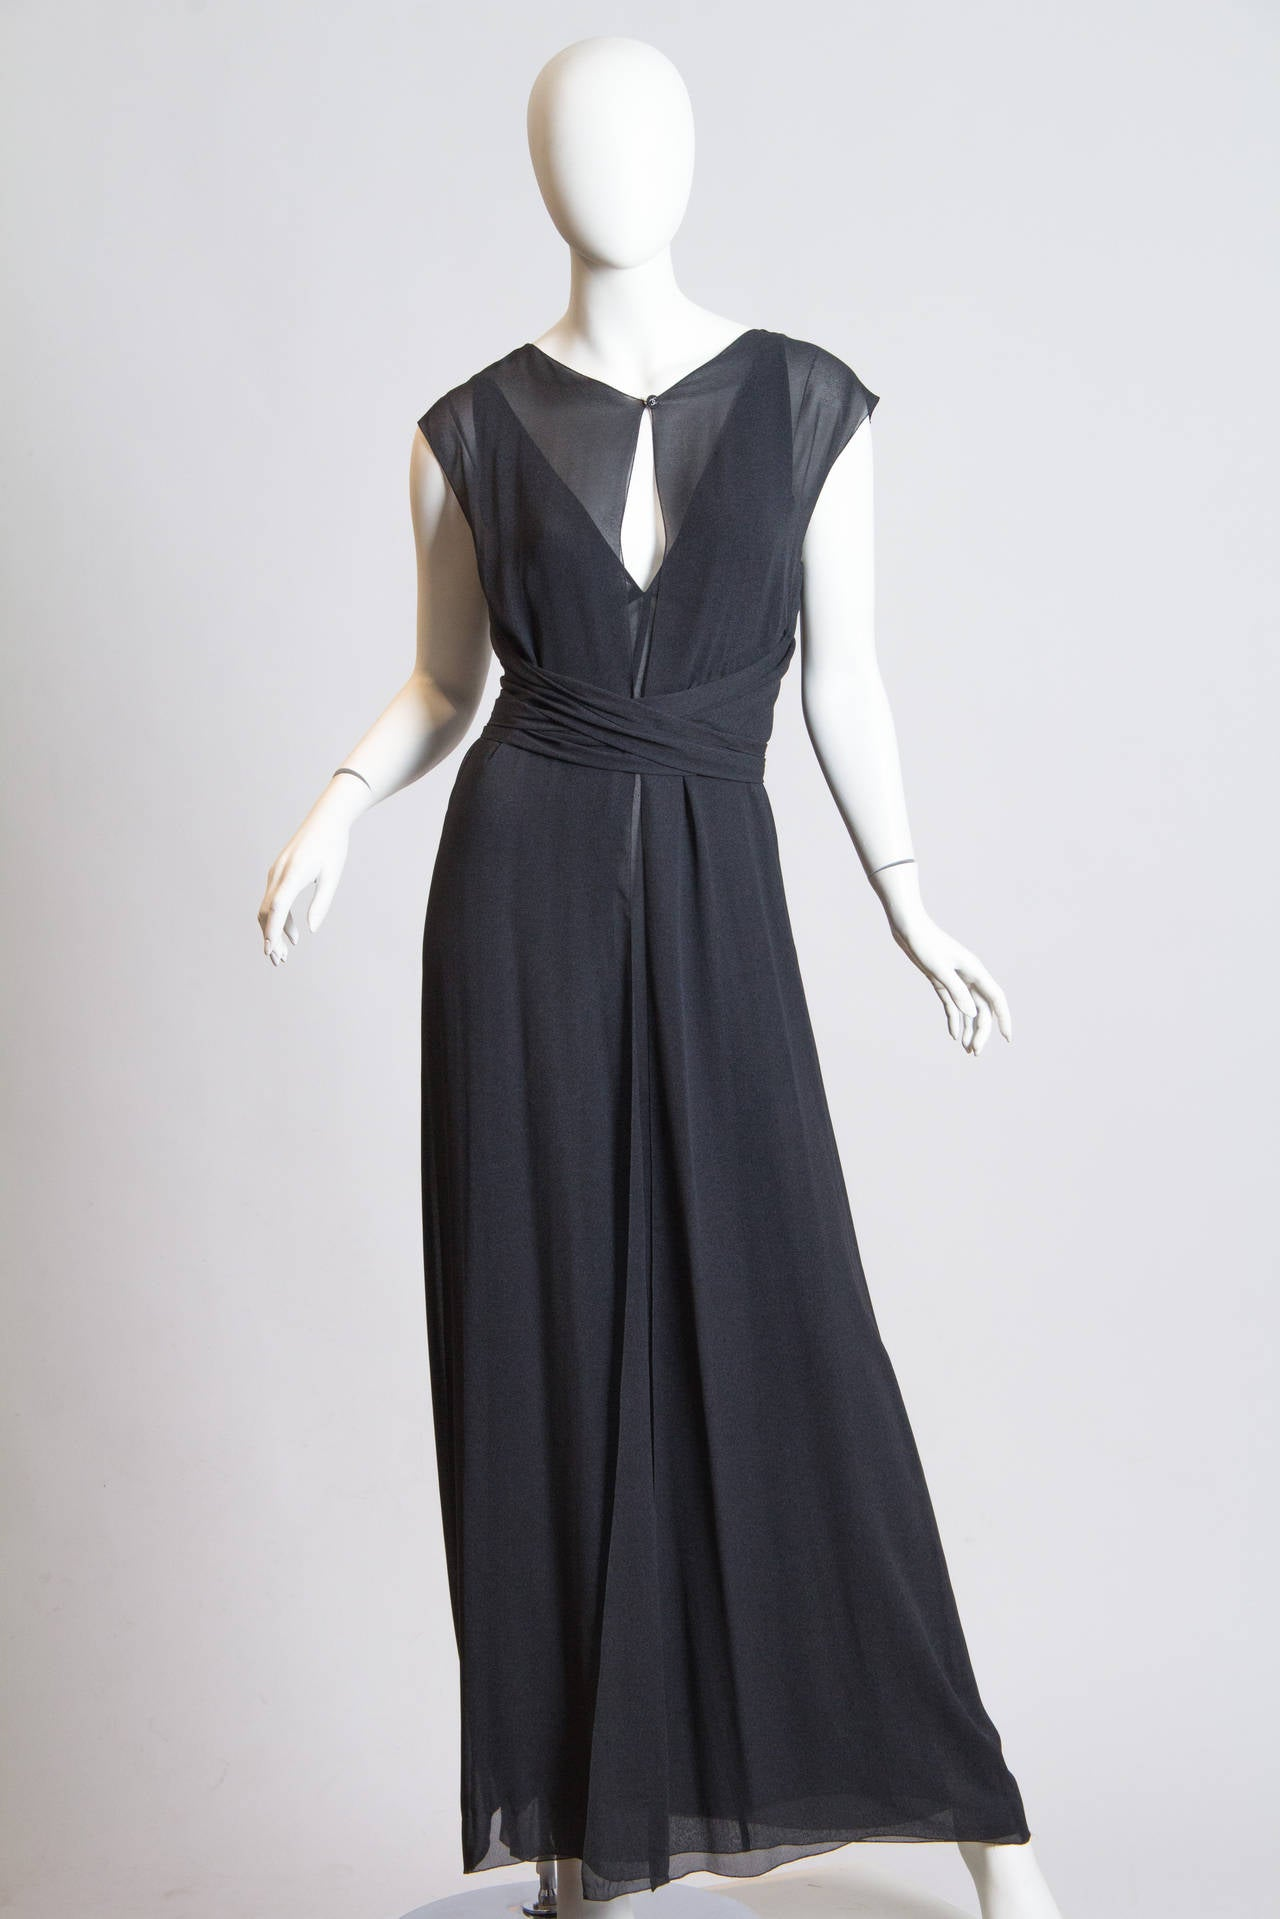 Slate Grey Crepe Dress from Chanel 3